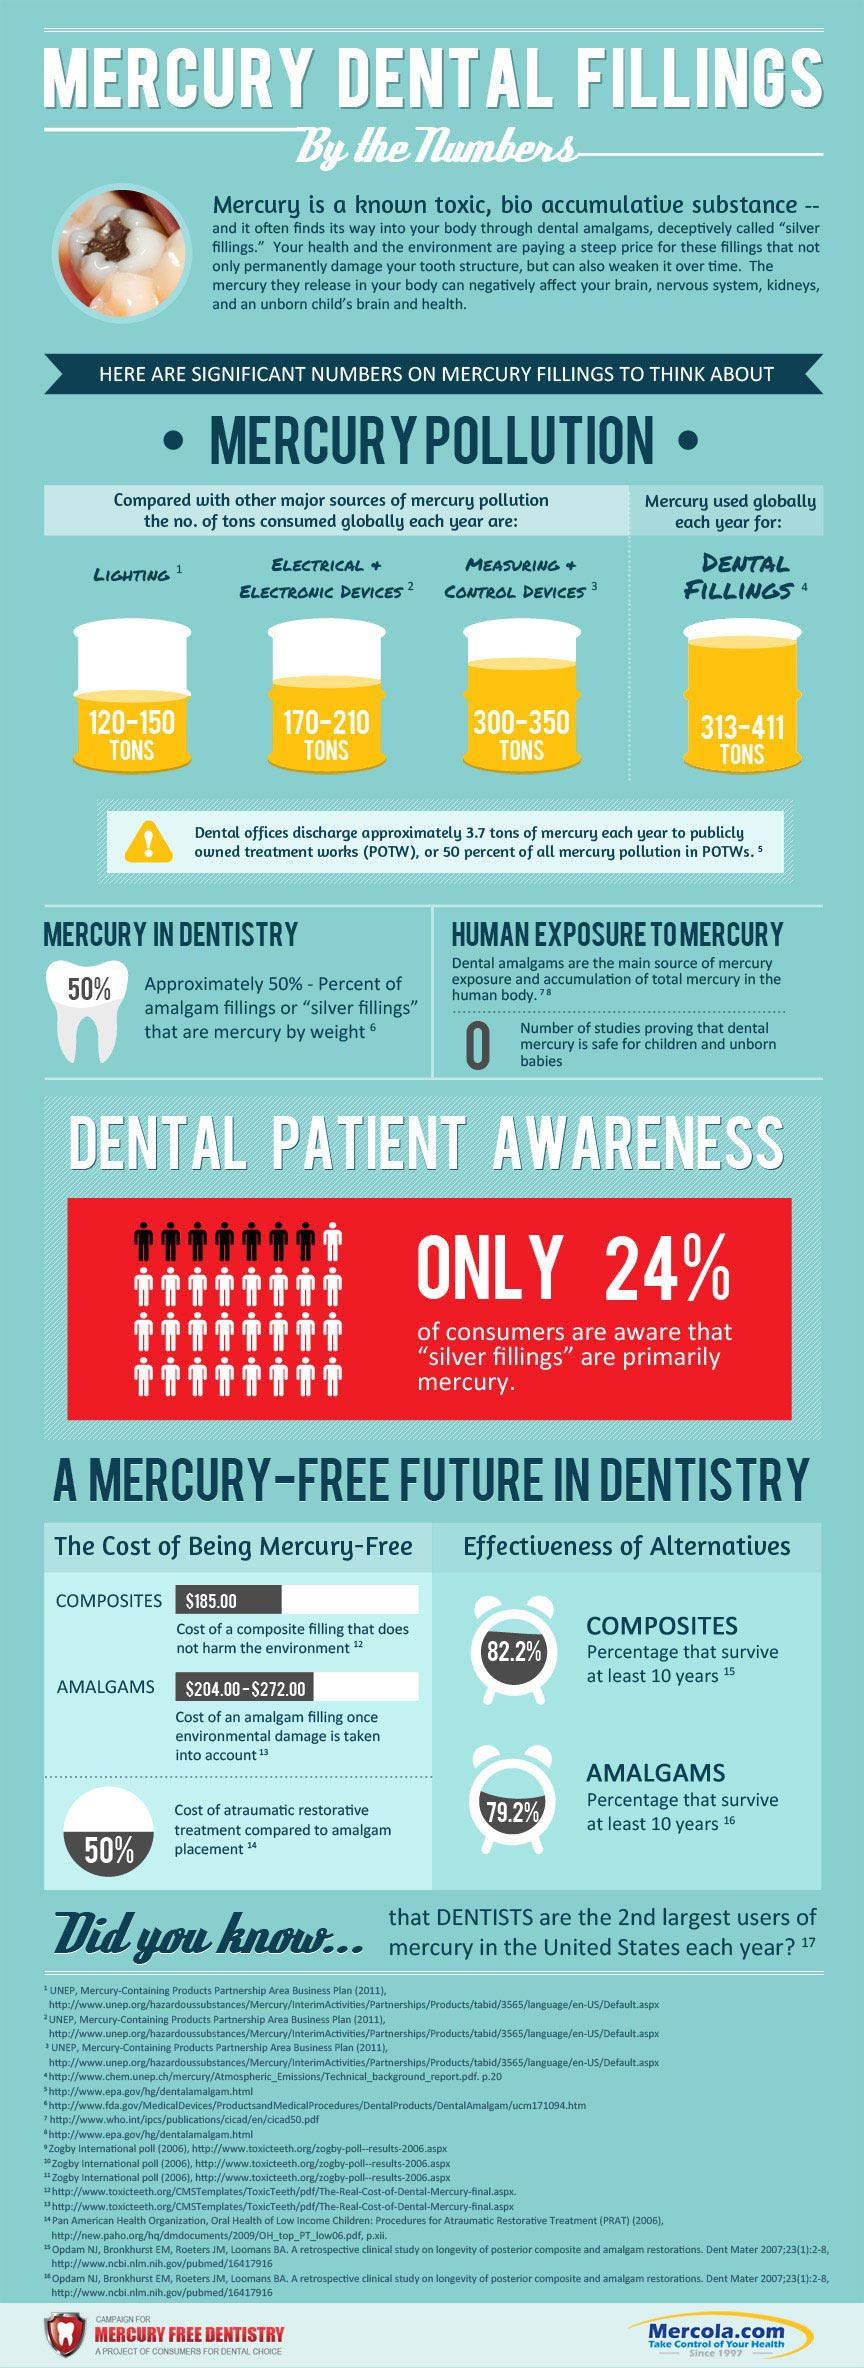 dental fillings infographic